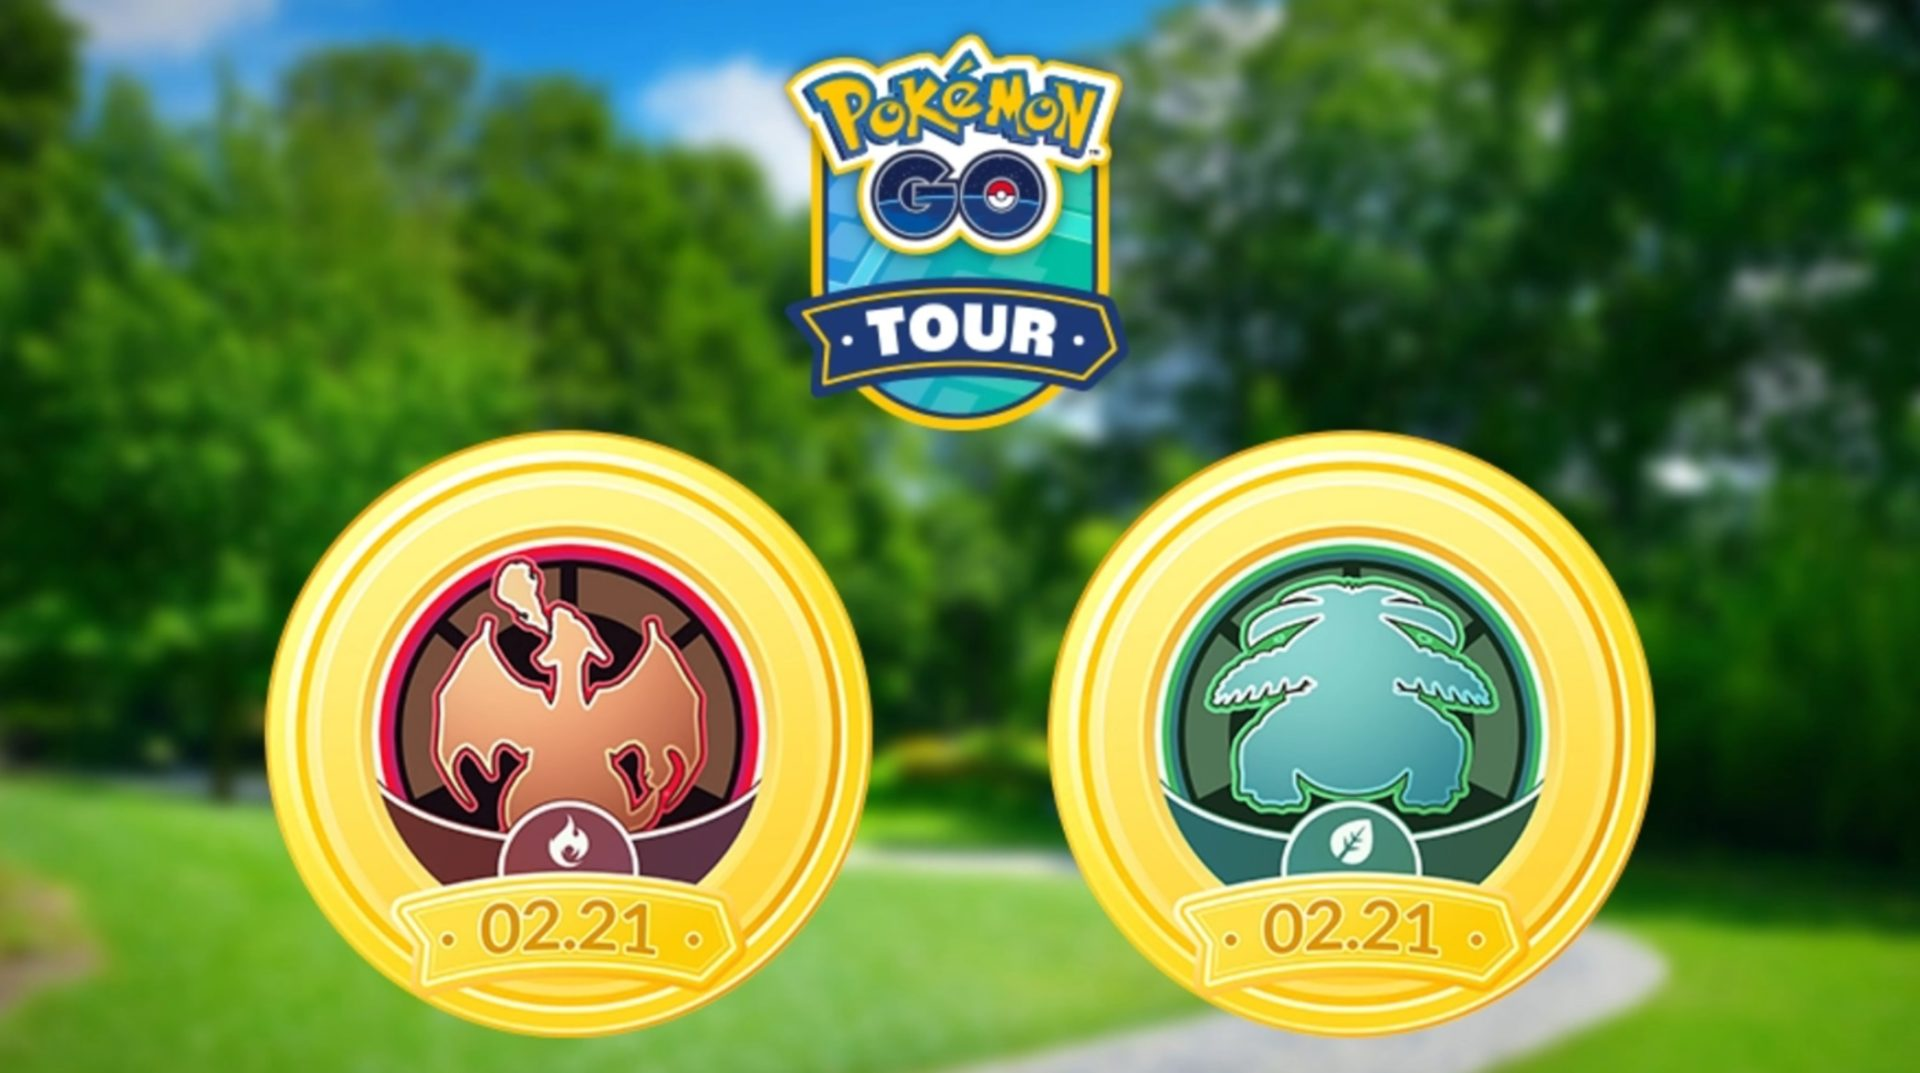 Pokemon Go Kanto Tour event